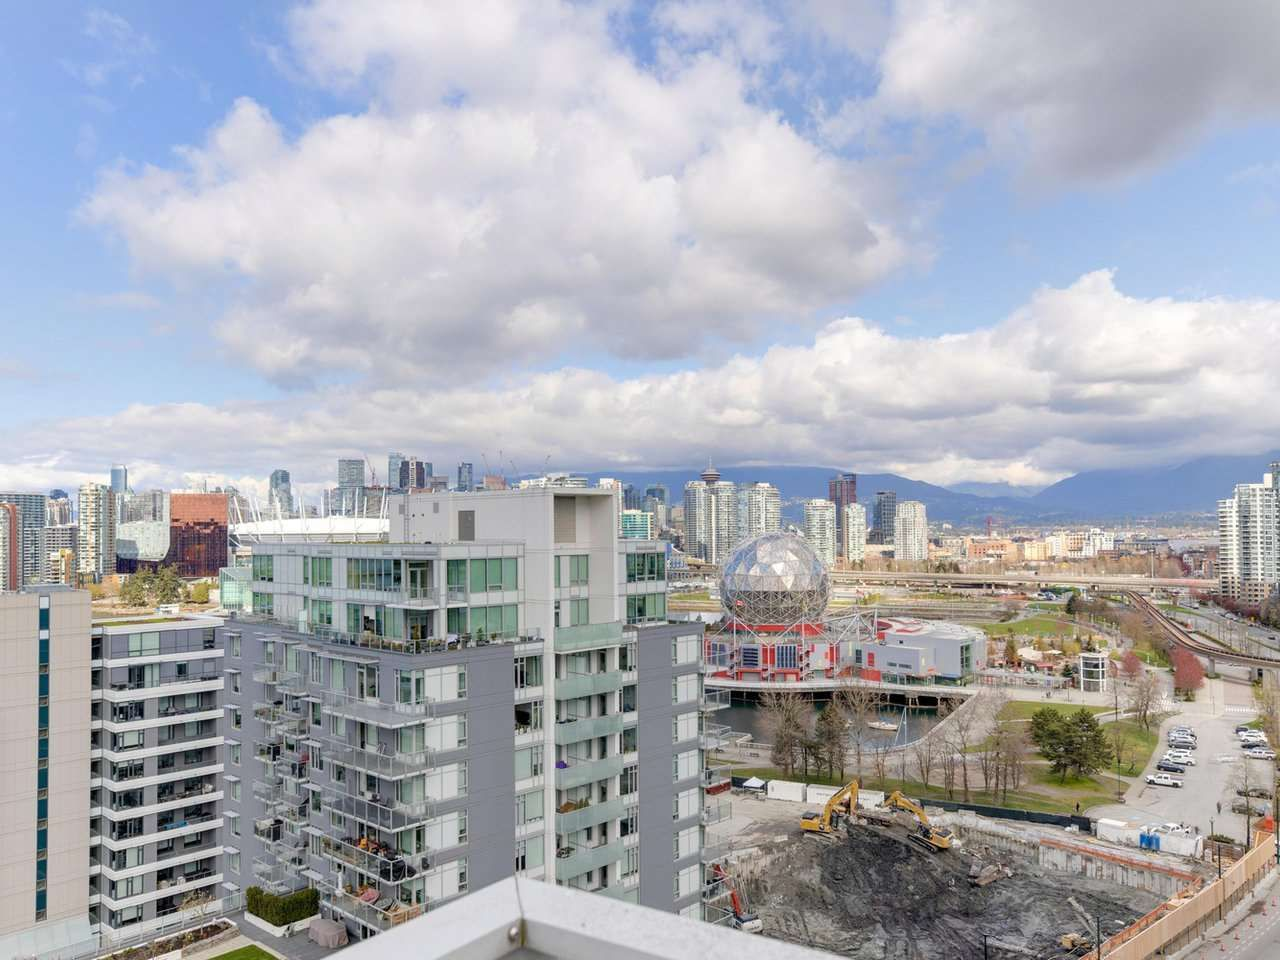 """Main Photo: 1806 111 E 1ST Avenue in Vancouver: Mount Pleasant VE Condo for sale in """"BLOCK 100"""" (Vancouver East)  : MLS®# R2614472"""